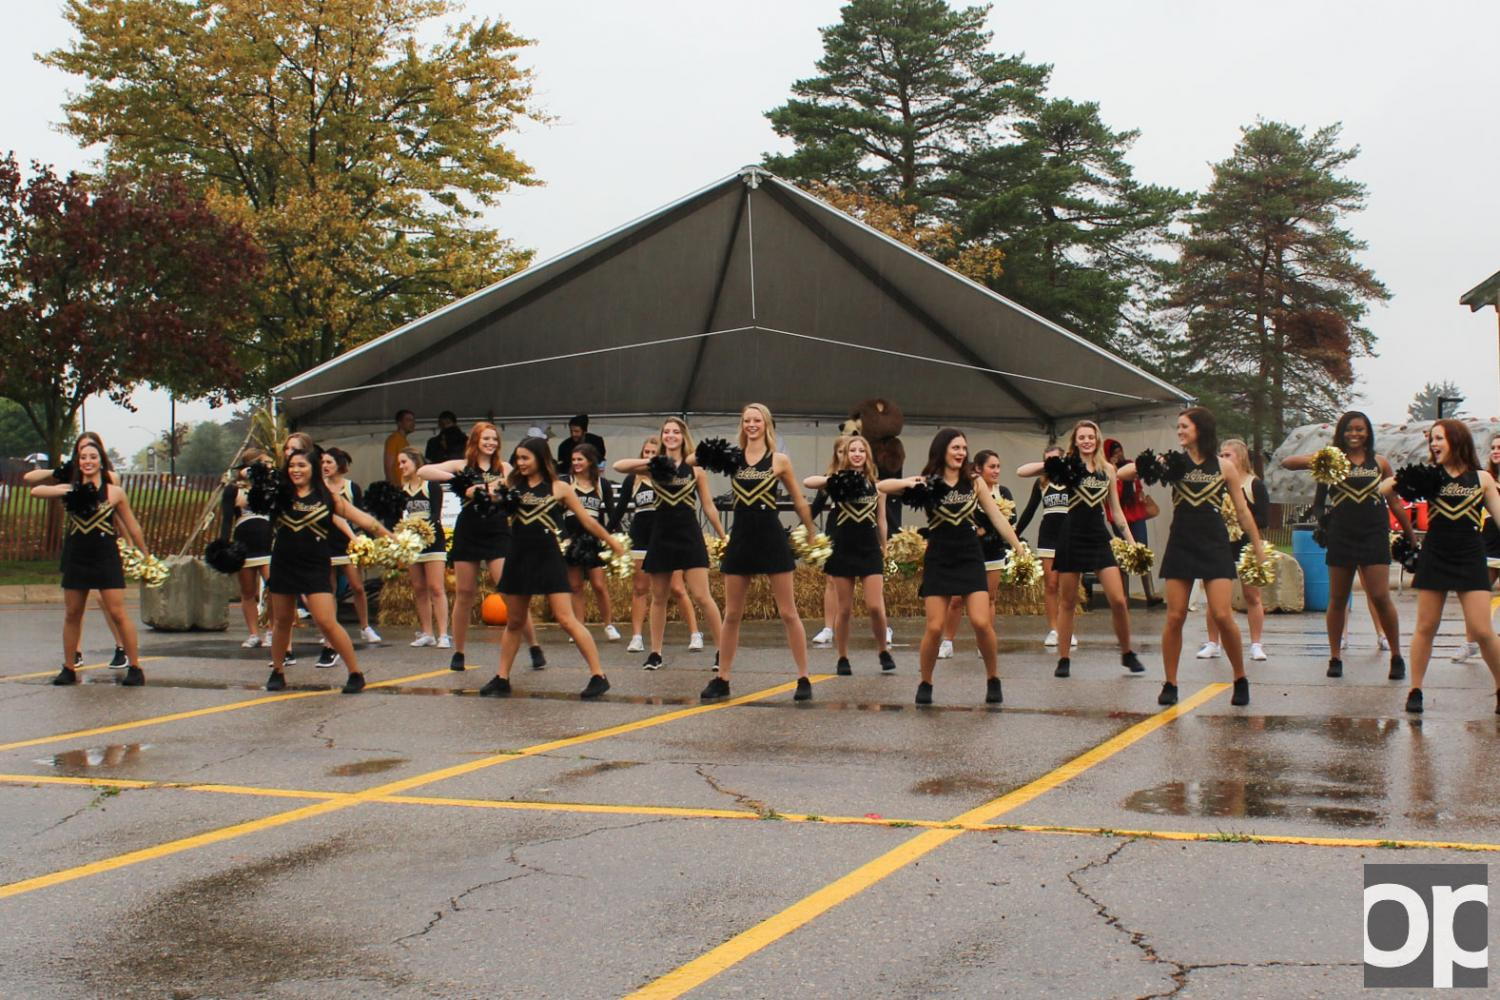 Oakland spirit was not dampened on homecoming weekend.